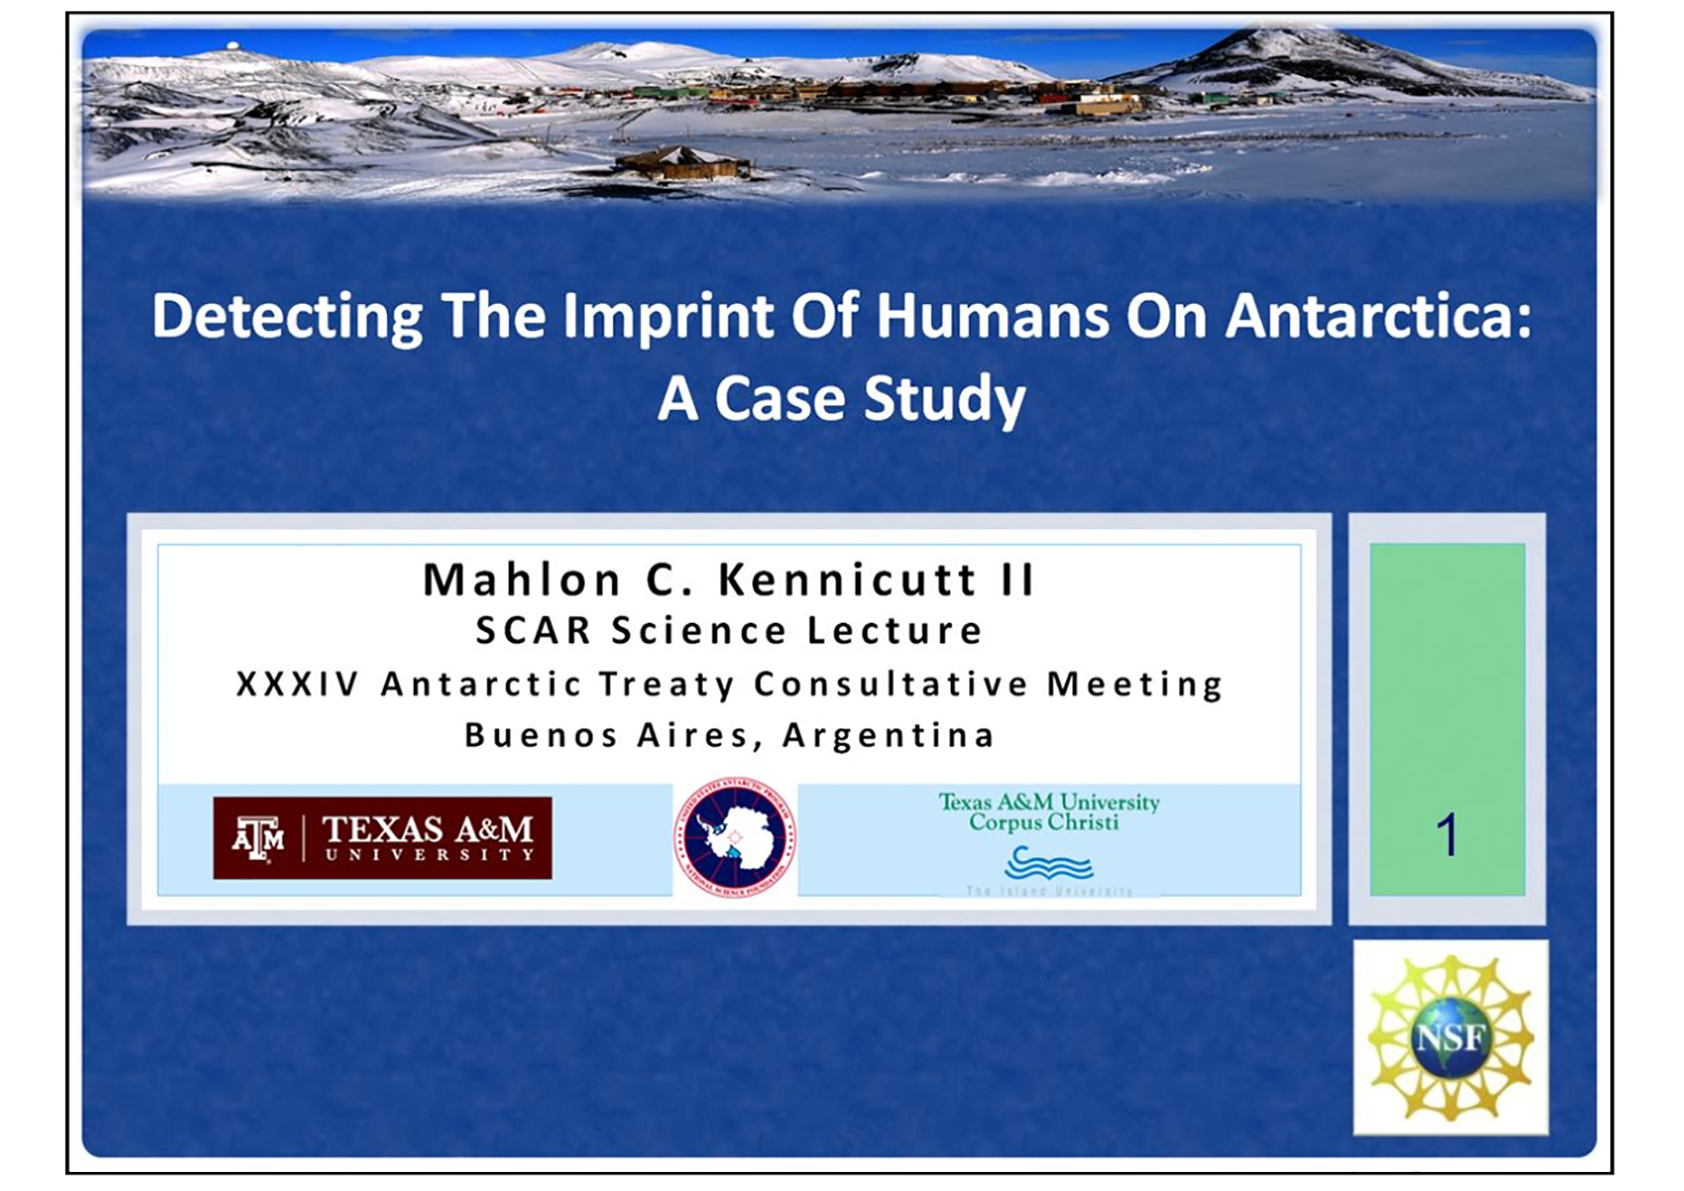 SCAR Lecture 2011: Detecting the Imprint of Humans on Antarctica: A Case Study